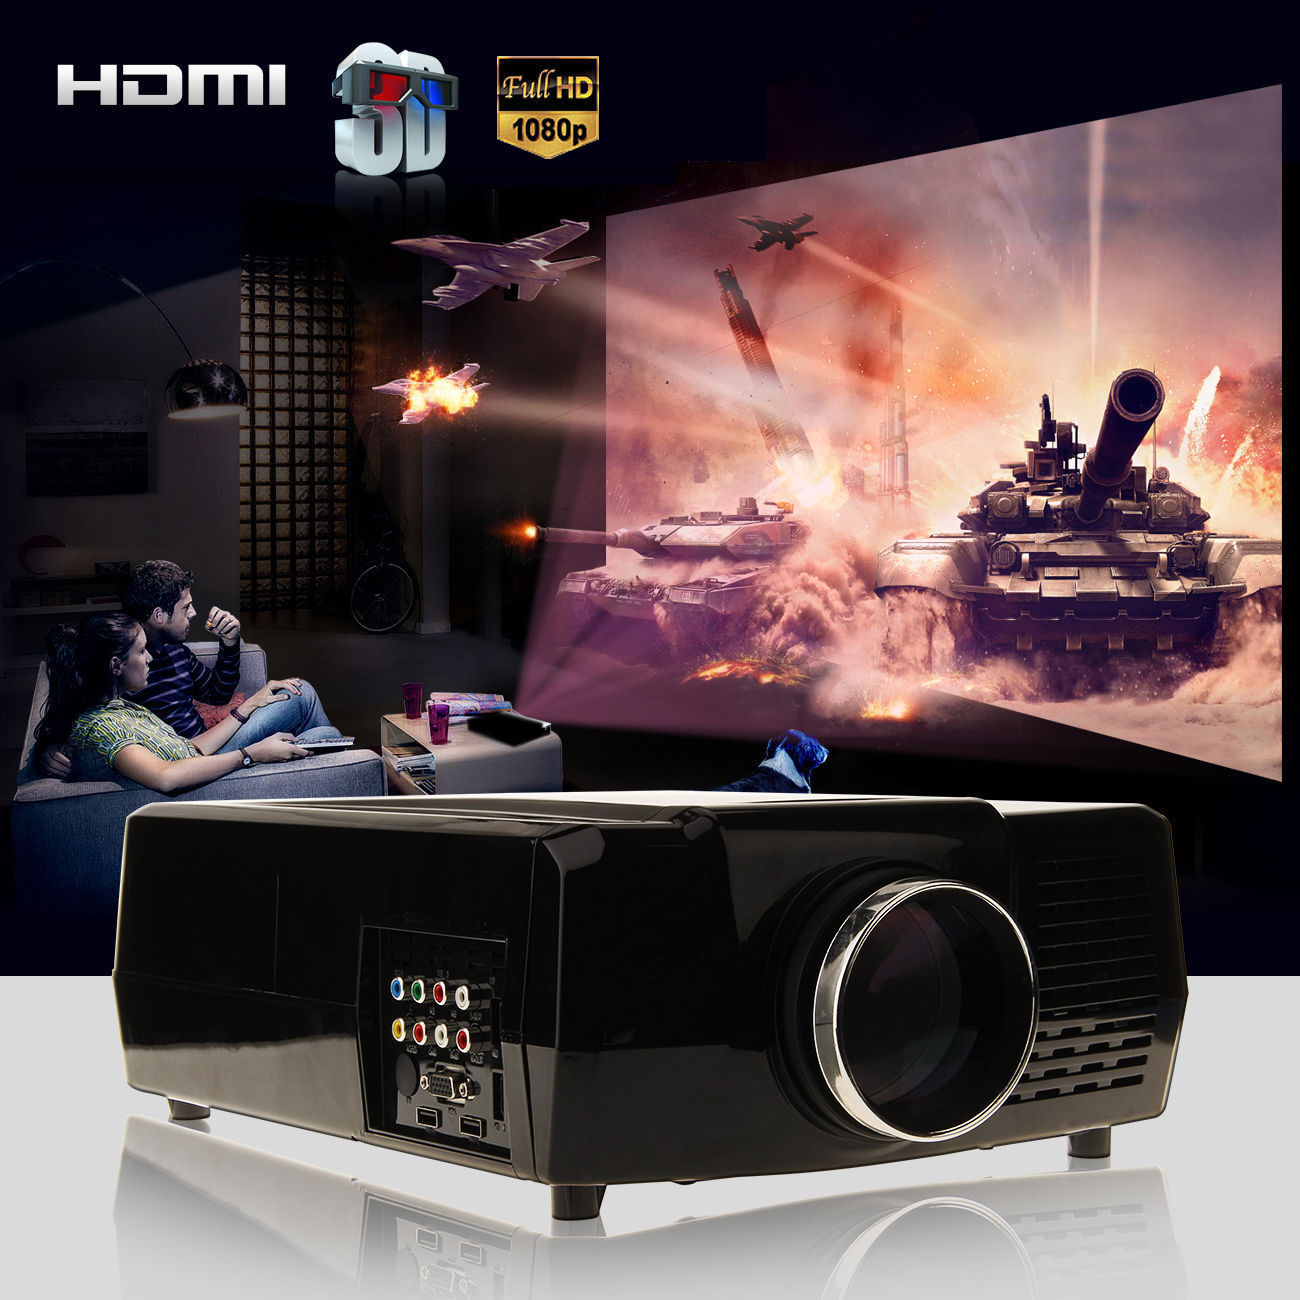 Theater Room With Hidden Projector: 3000 Lumens HD Home Cinema Theater Multimedia LED/LCD